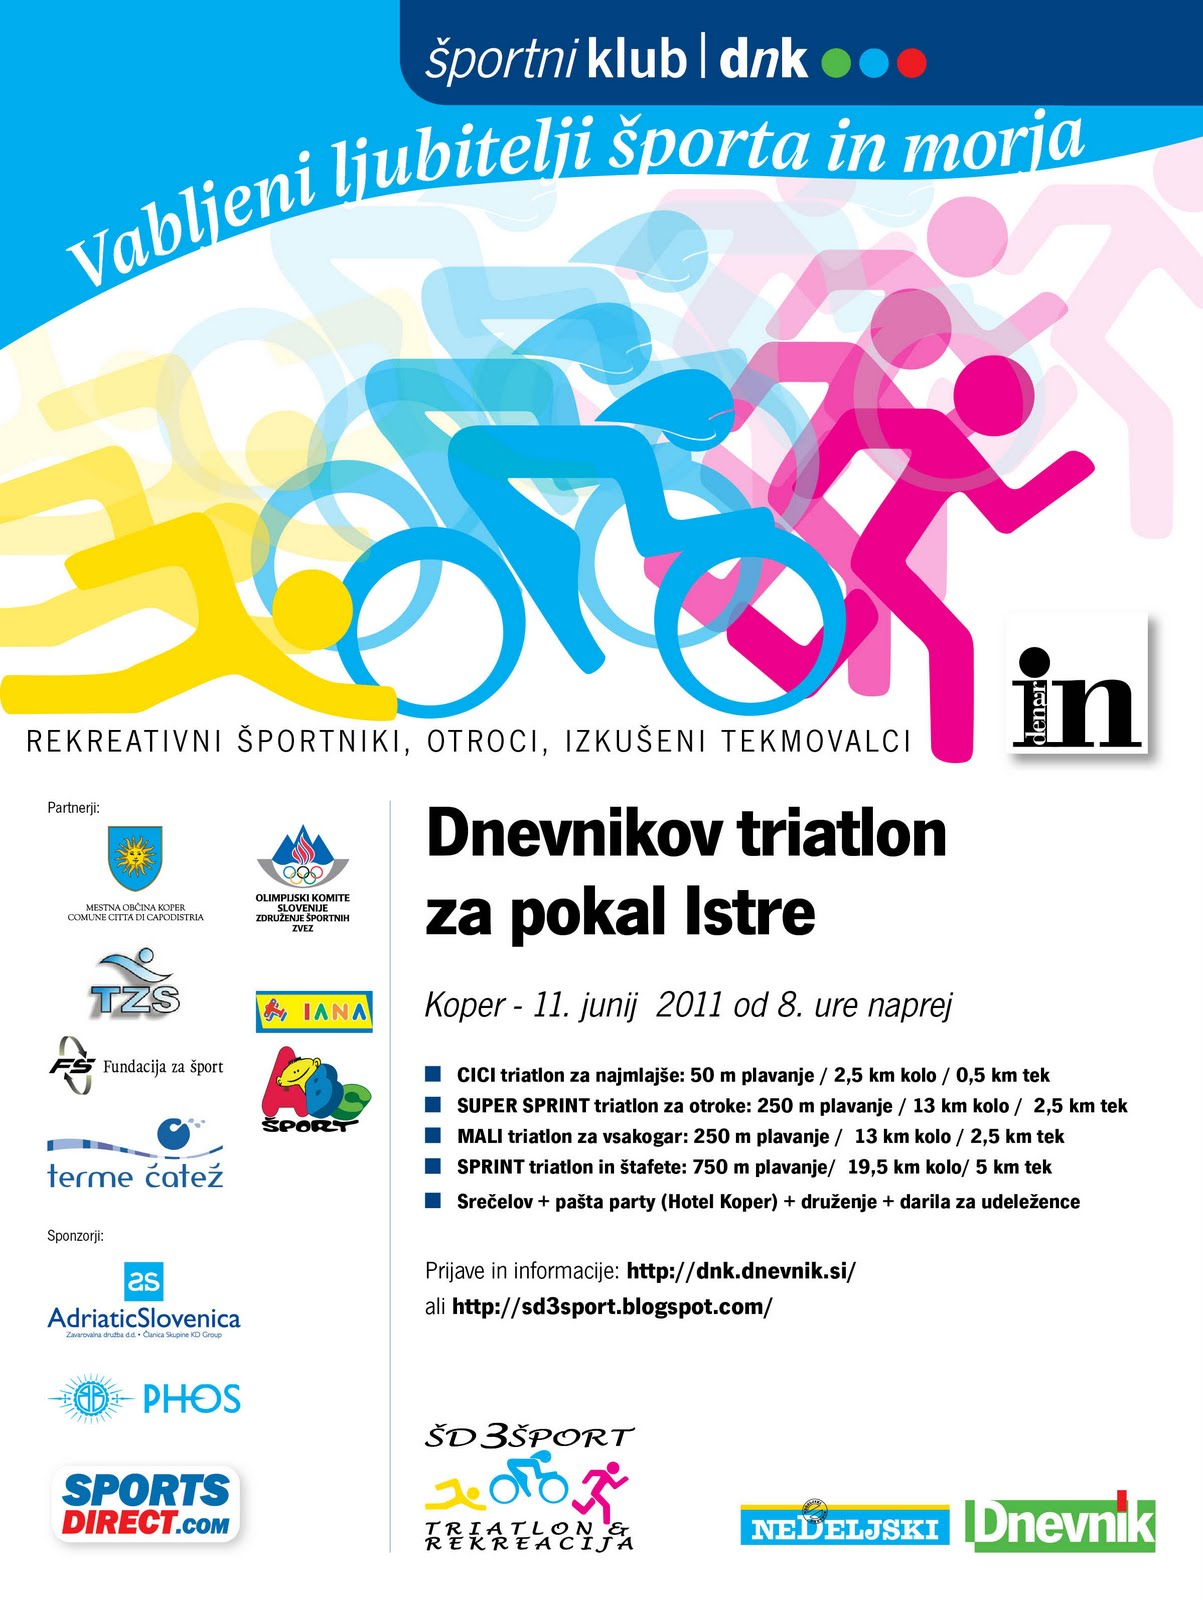 DNEVNIKOV TRIATLON ZA POKAL ISTRE  /  TRIATHLON ISTRIA CUP 2011